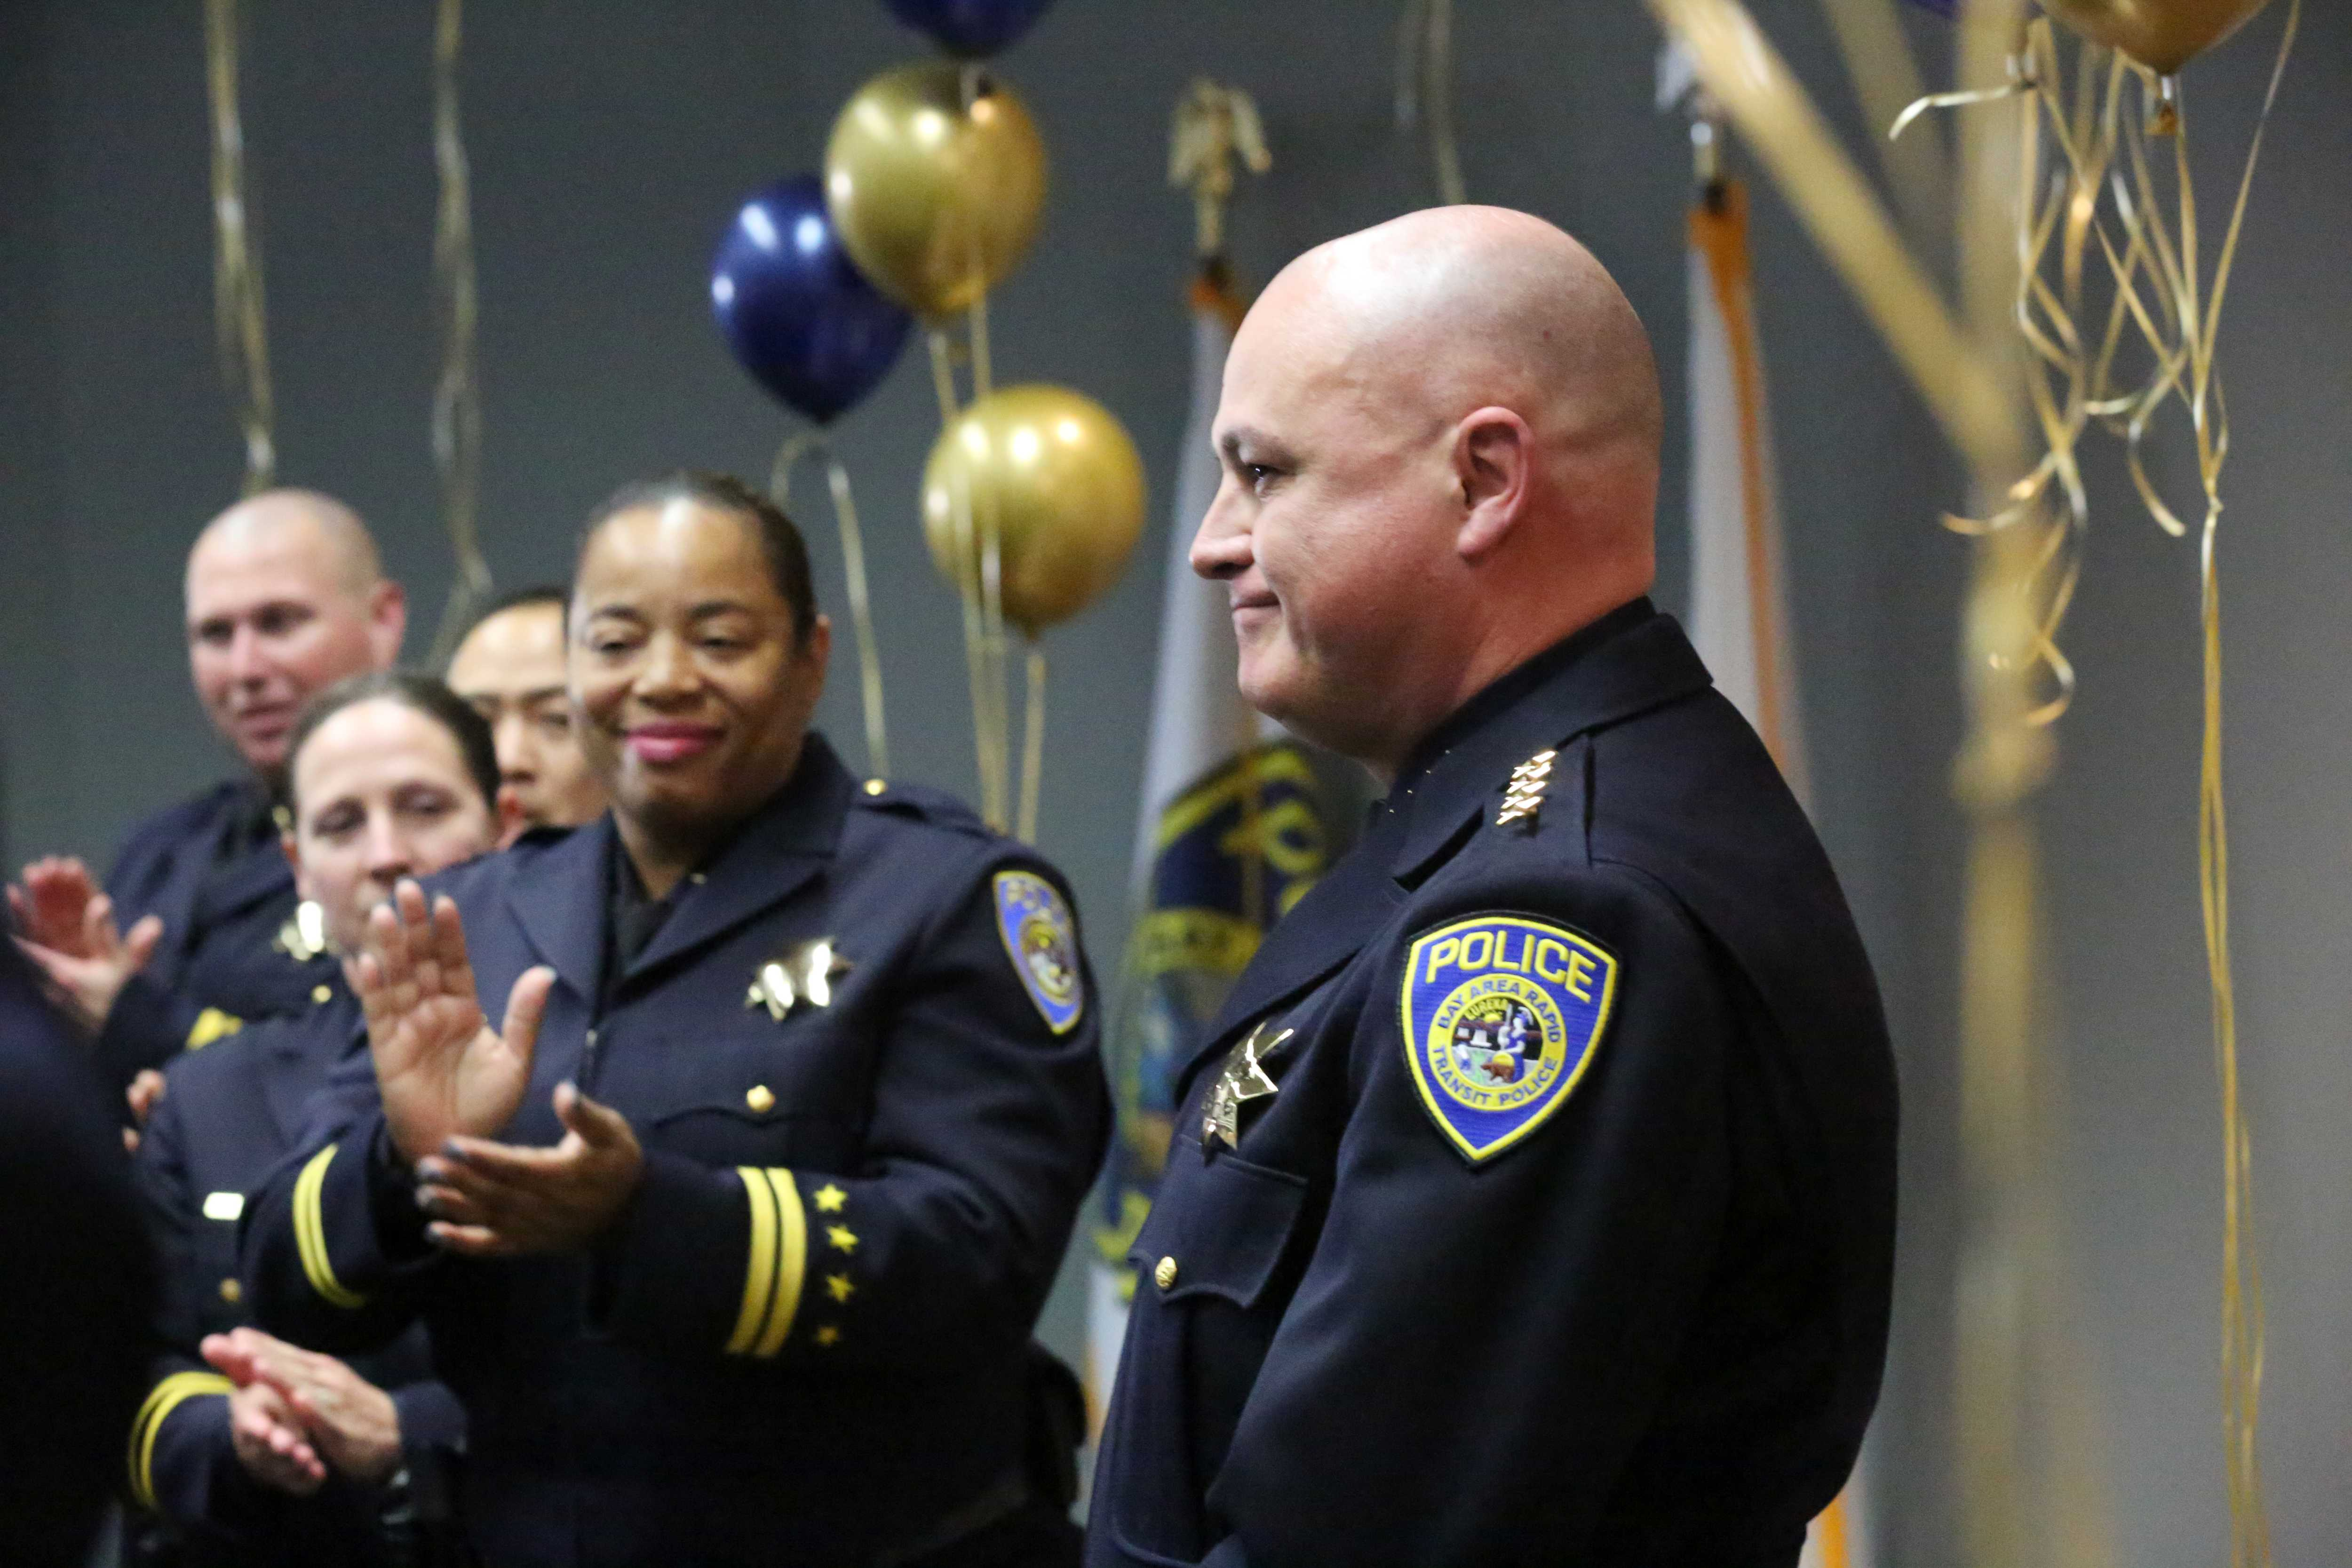 Swearing-in ceremony for Alvarez on Feb. 7, 2020. At left, applauding, is Deputy Chief Angela Averiett, whom Alvarez named to le